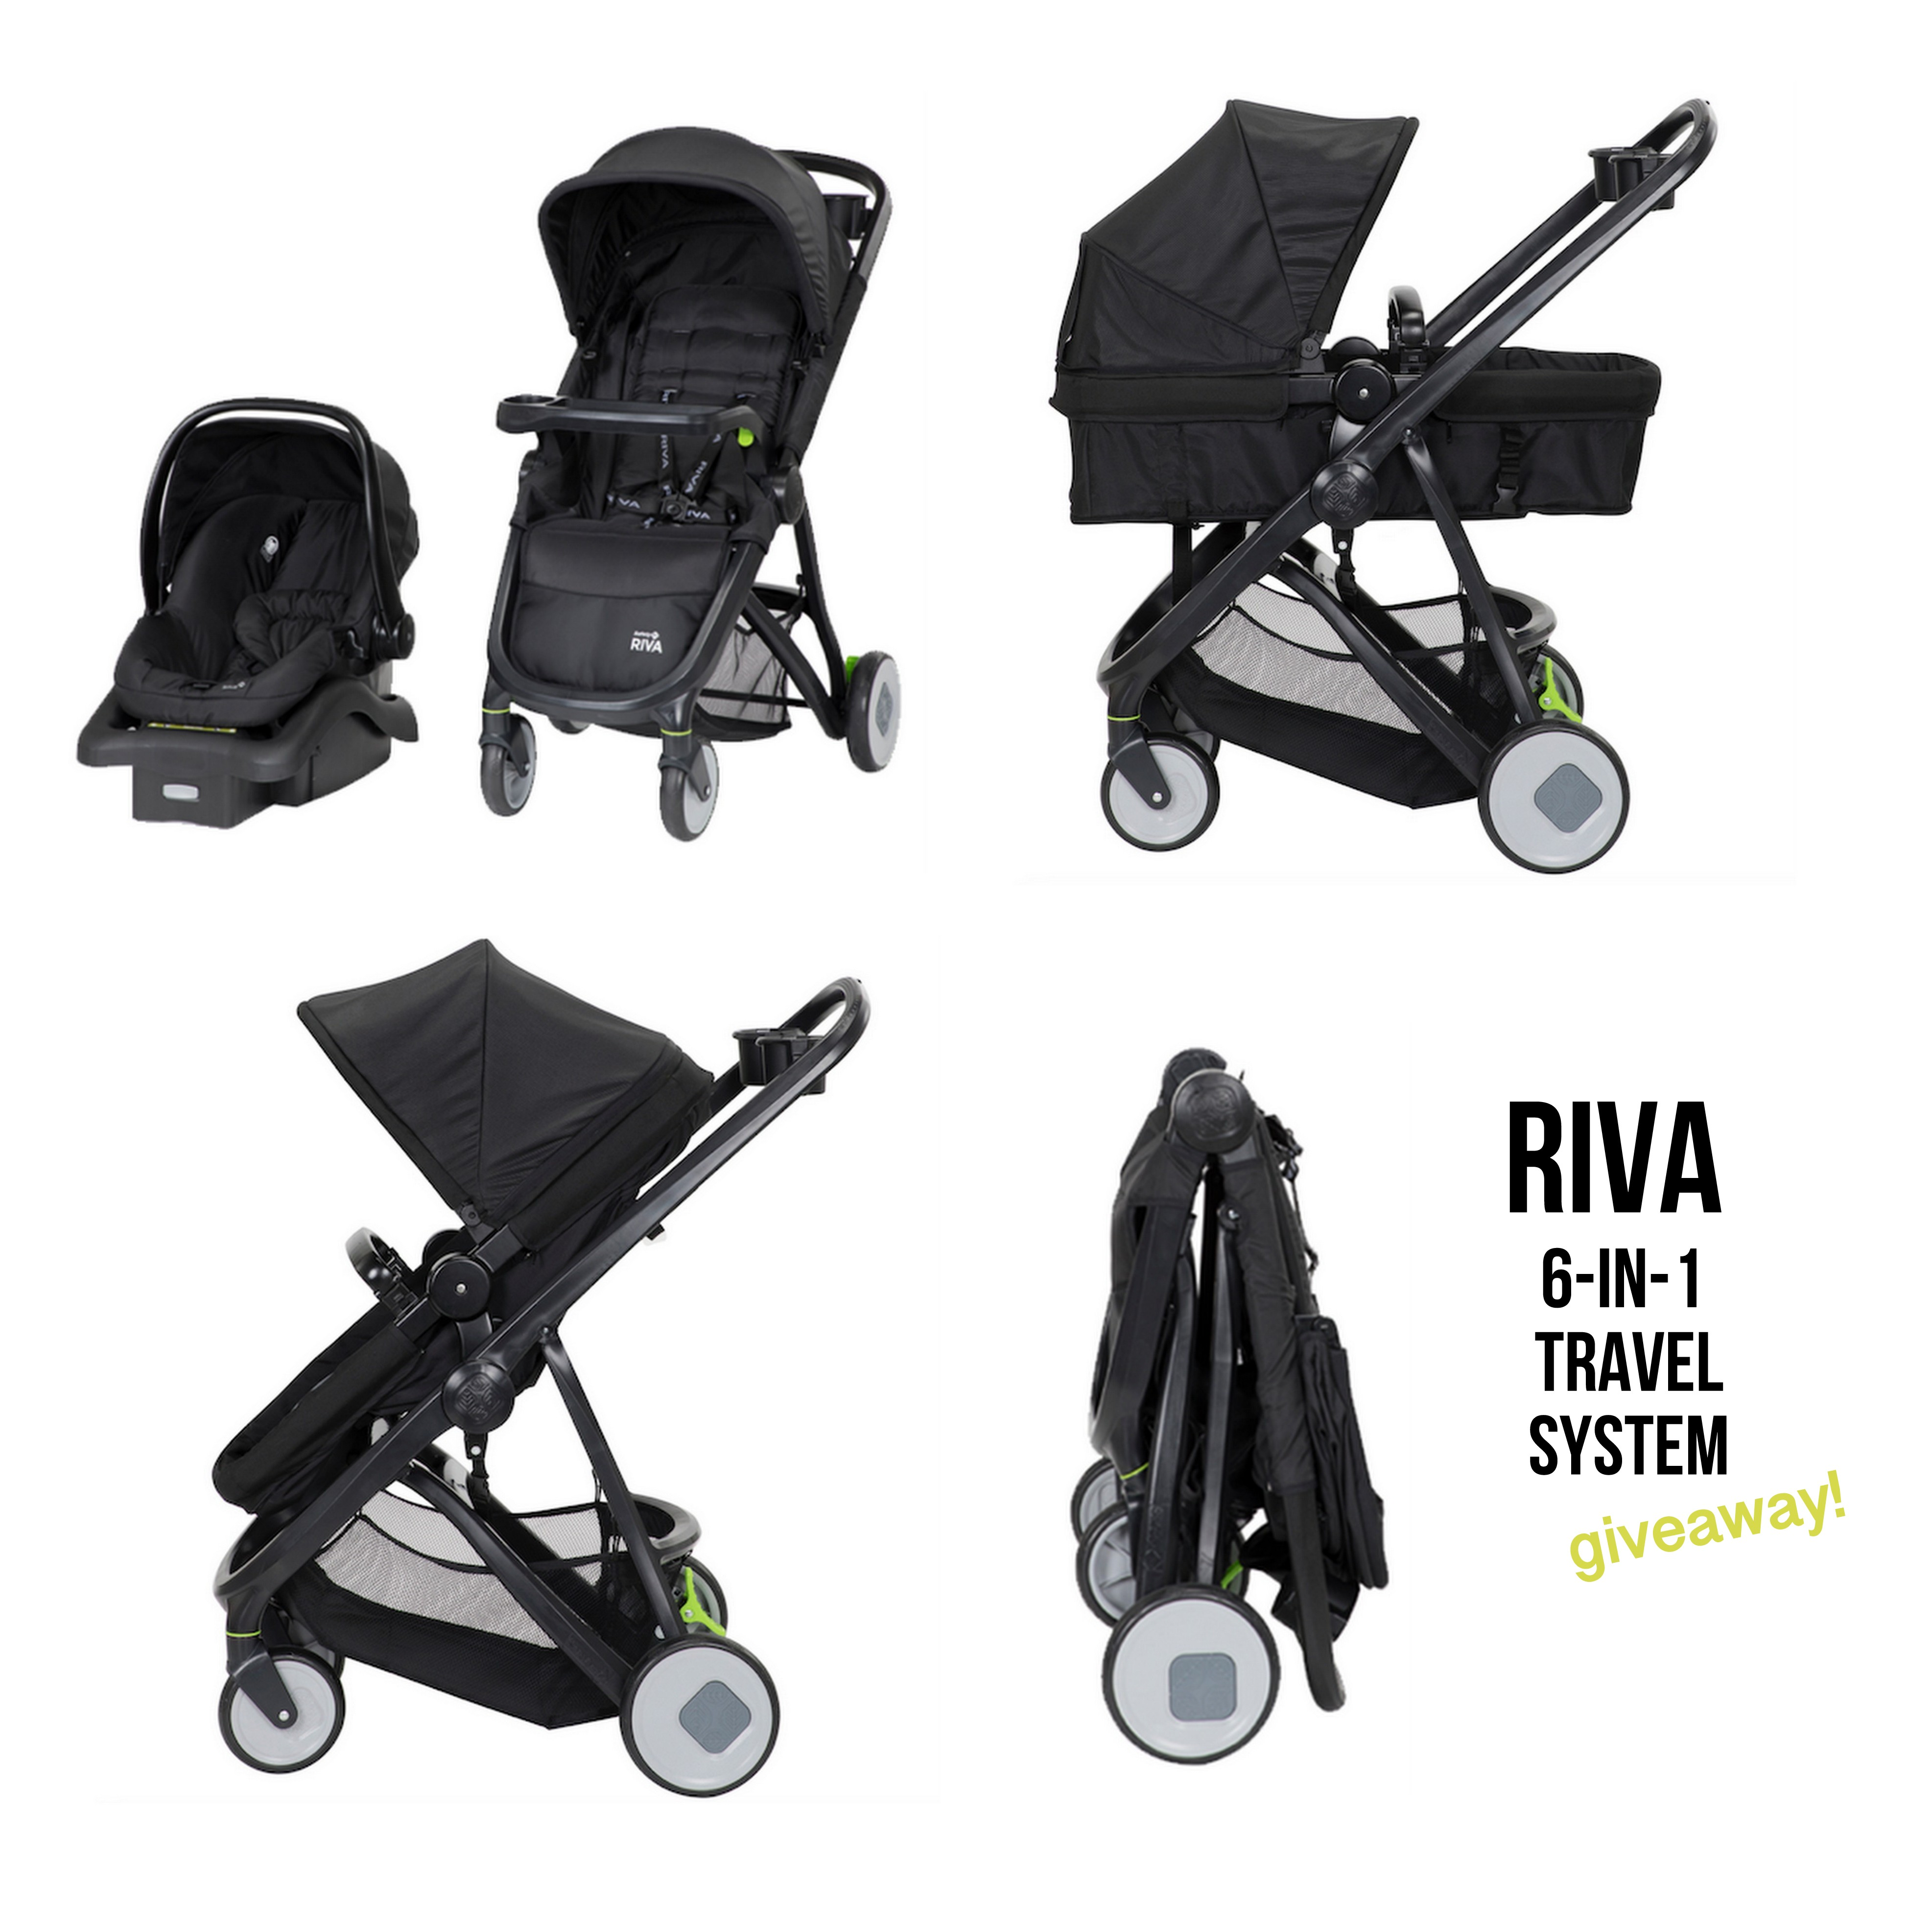 riva giveaway